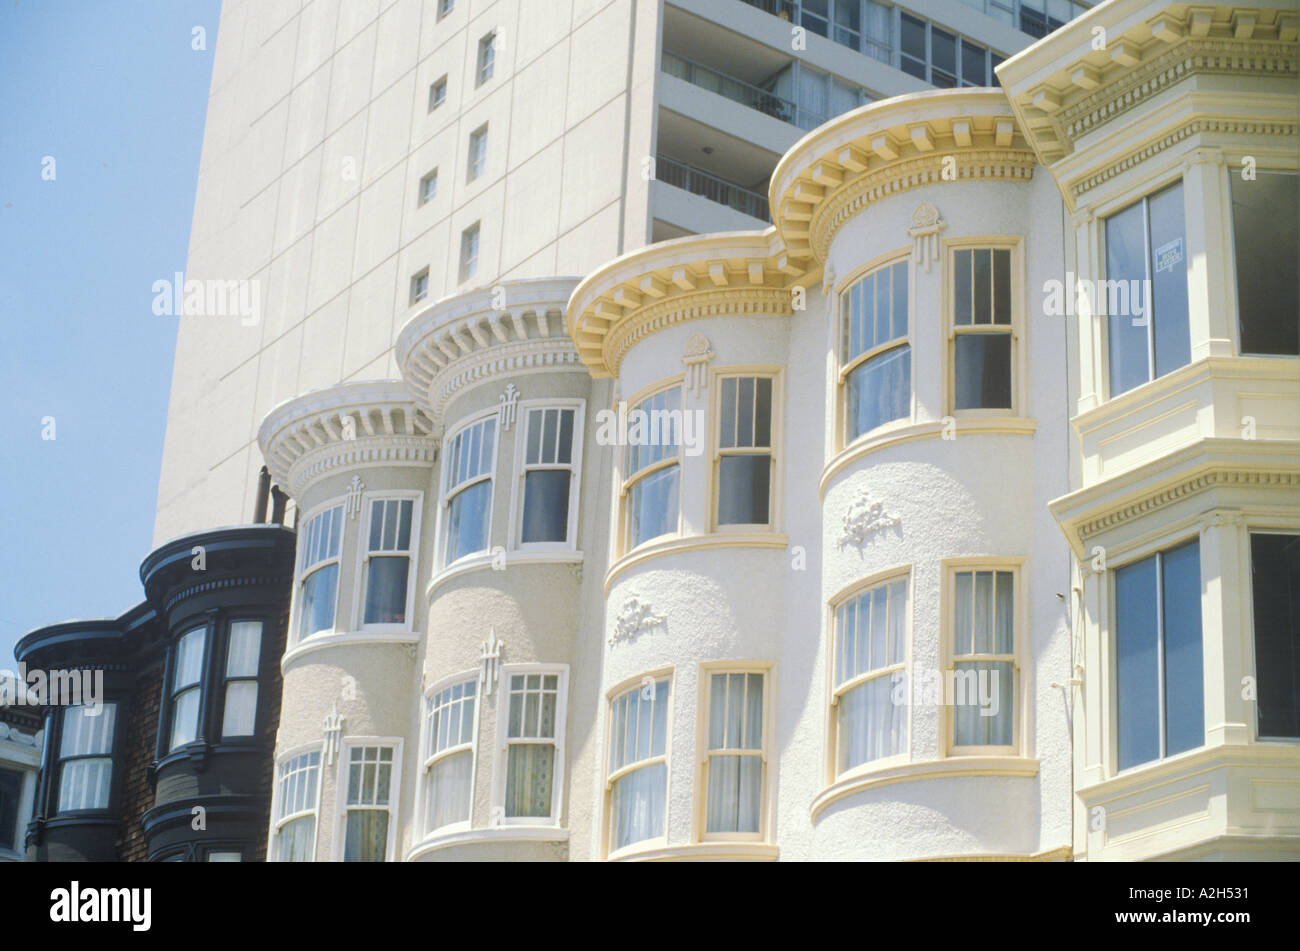 Wedding Cake Windows From San Francisco S Victorian Apartment Buildings 2002